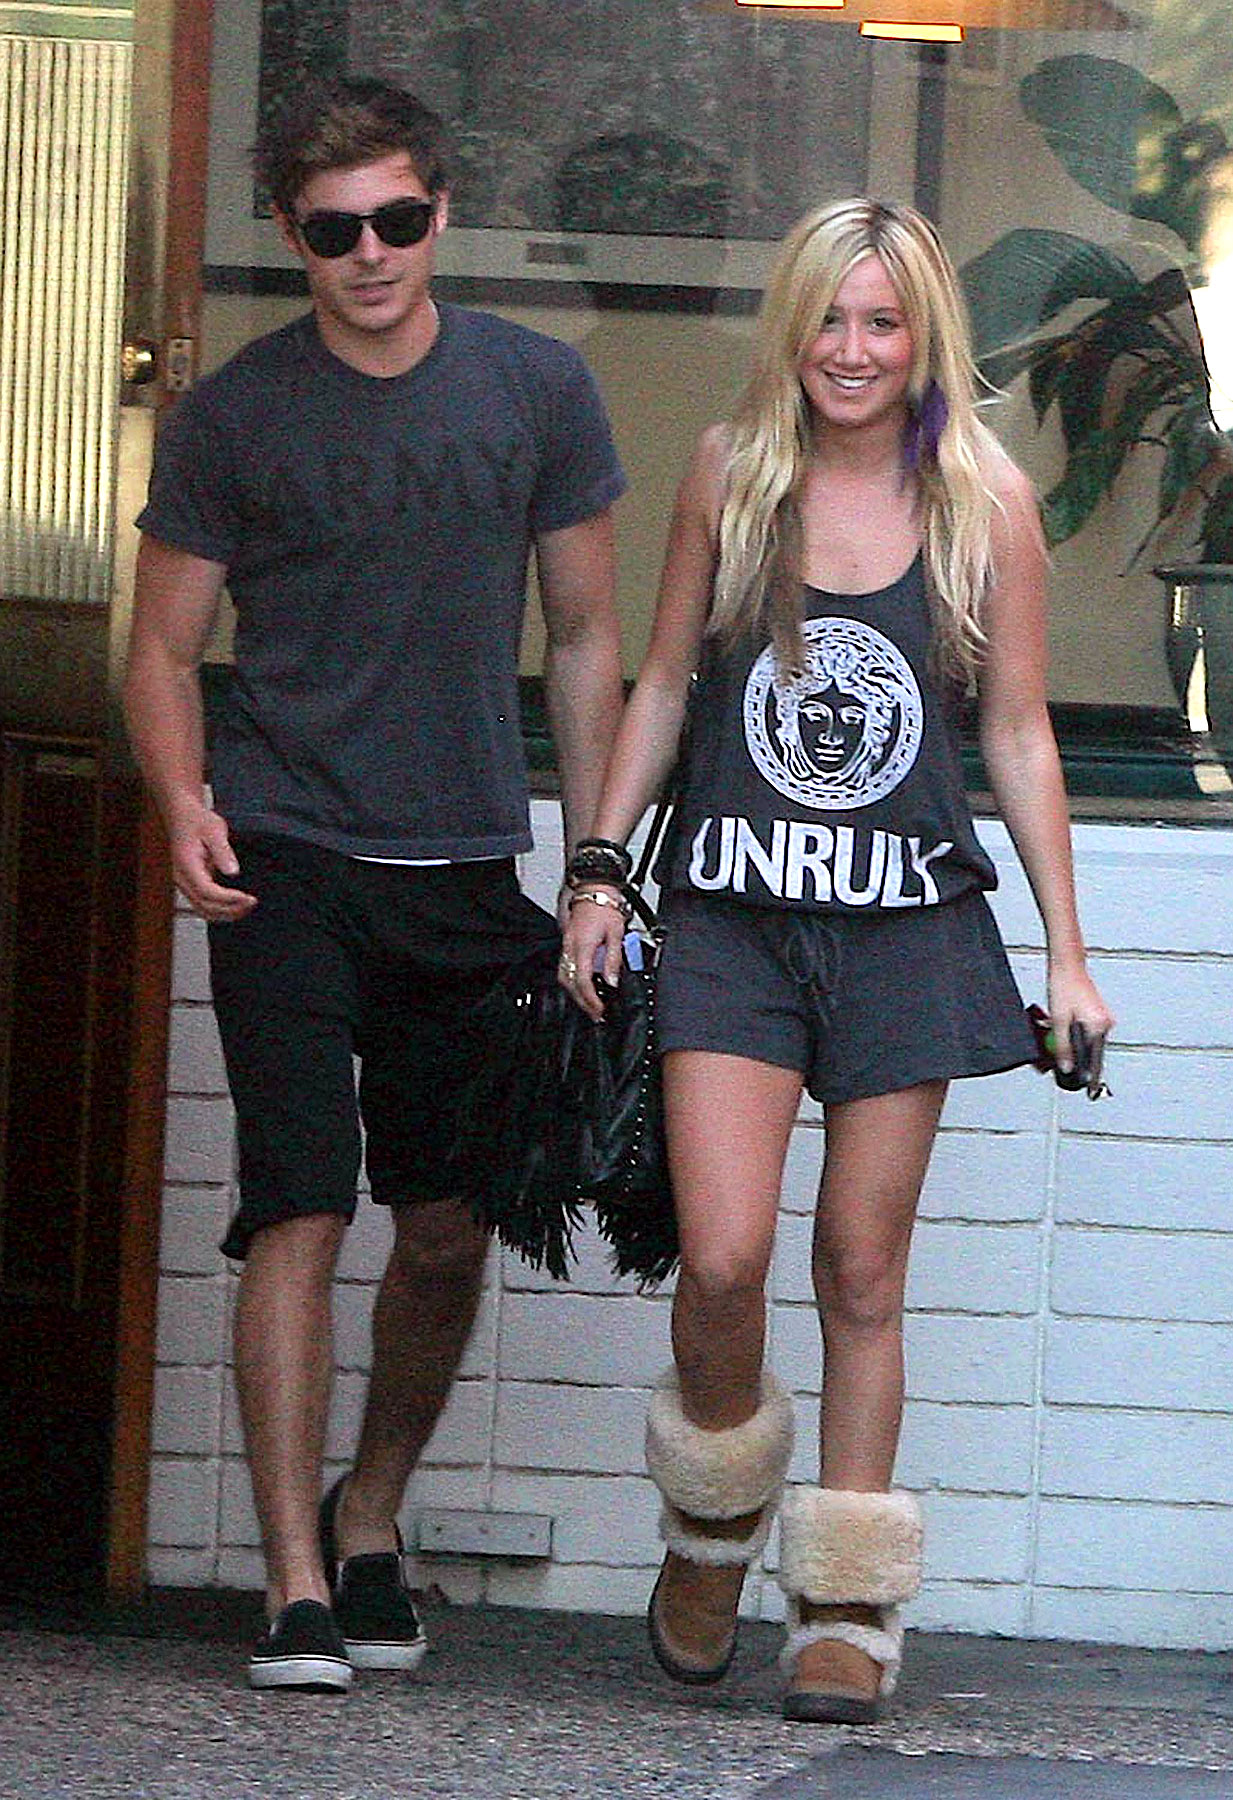 PHOTO GALLERY: Zac Efron & Ashley Tisdale's Gym Date